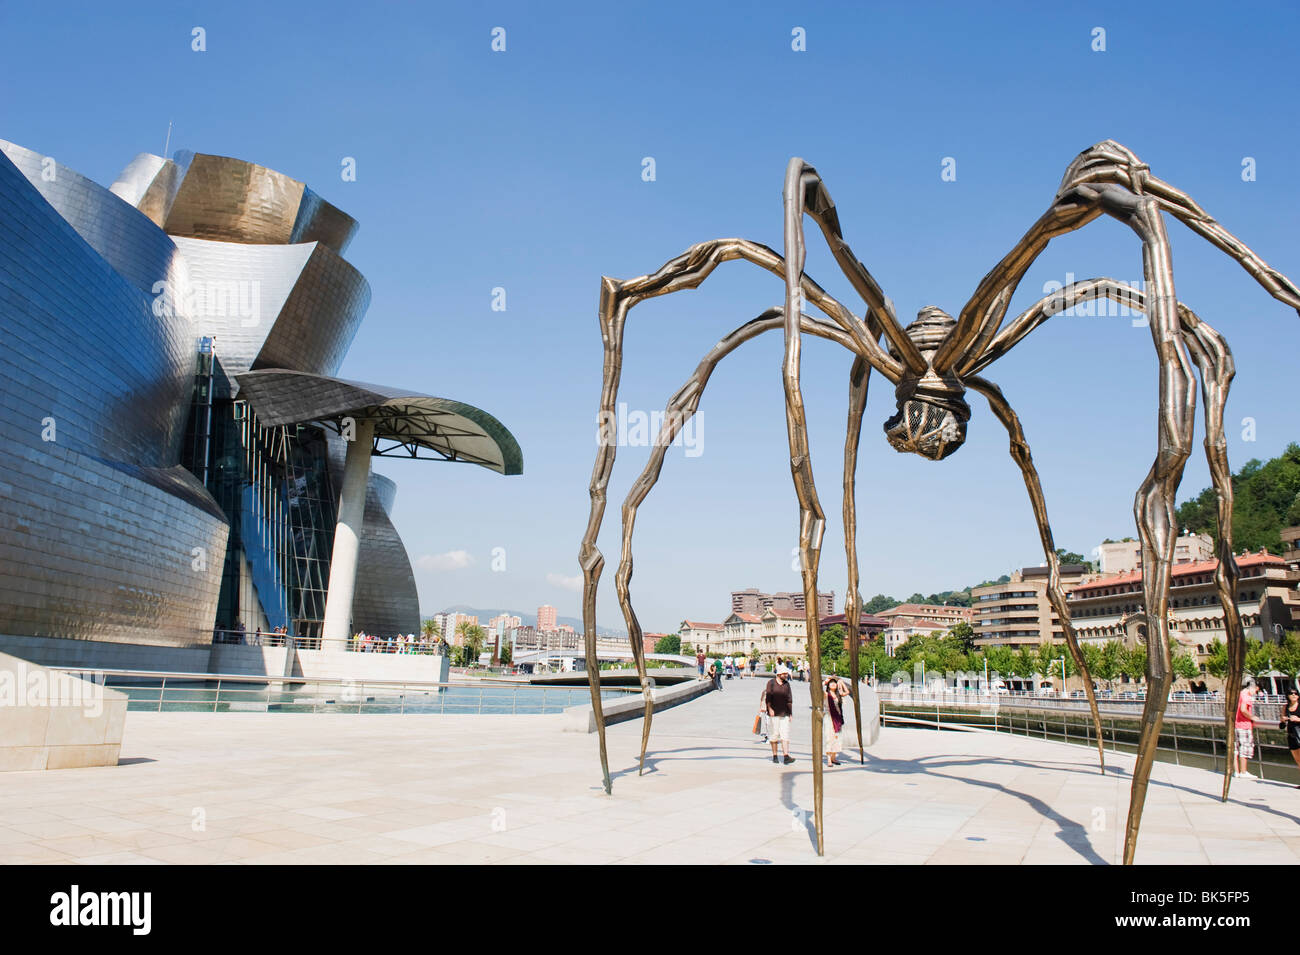 The Guggenheim, designed by architect Frank Gehry, and giant spider sculpture by Louise Bourgeois, Bilbao, Spain - Stock Image